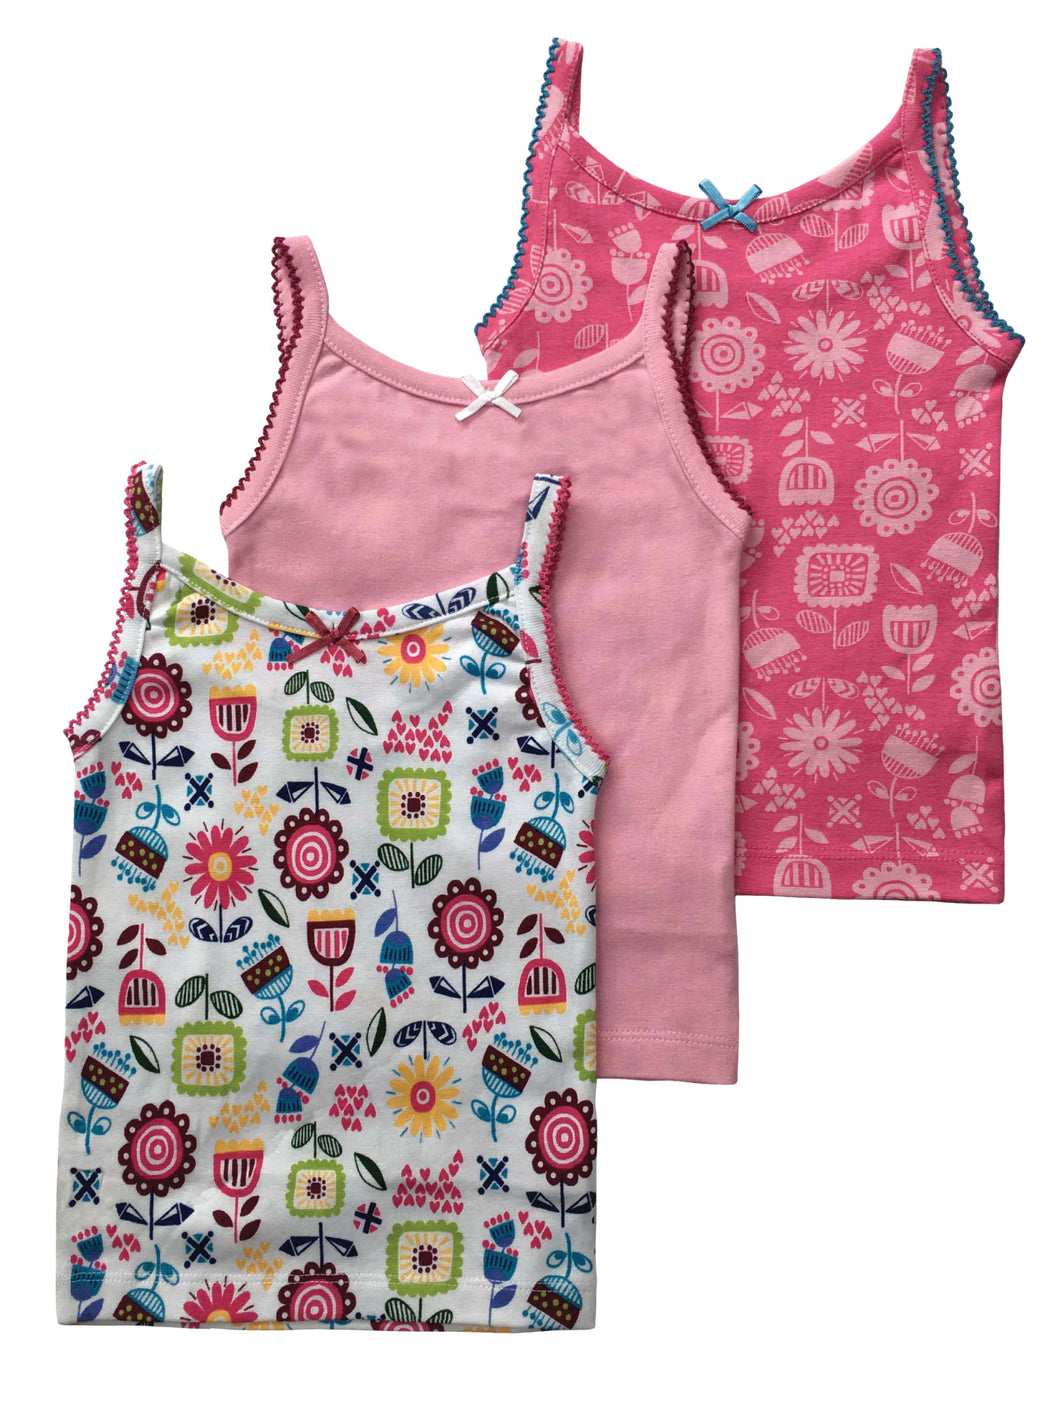 Pack of 3 vests for Girls - ages 3-6 years